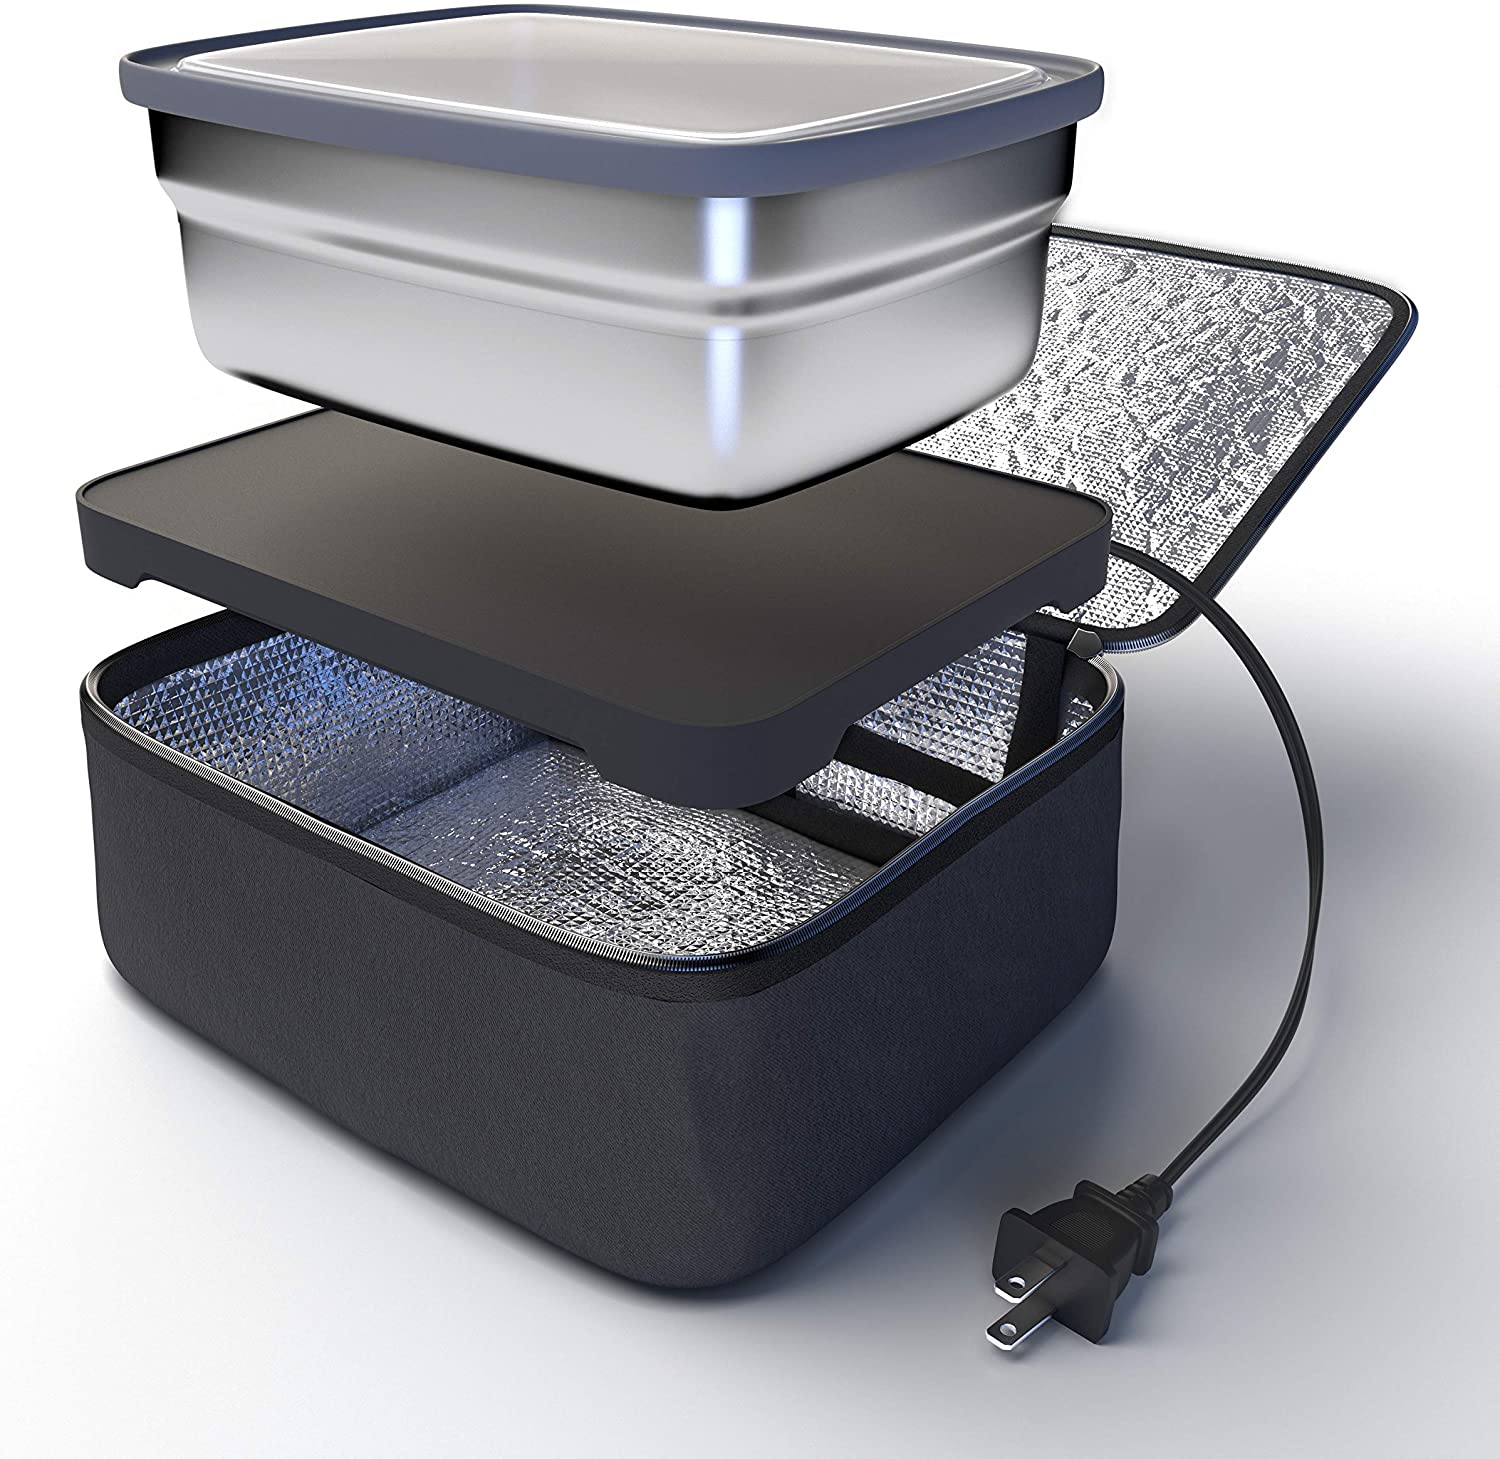 Skywin Portable Oven and Lunch Warmer Bag - Personal Food Warmer for reheating meals at work without an office microwave (Black, No Container)